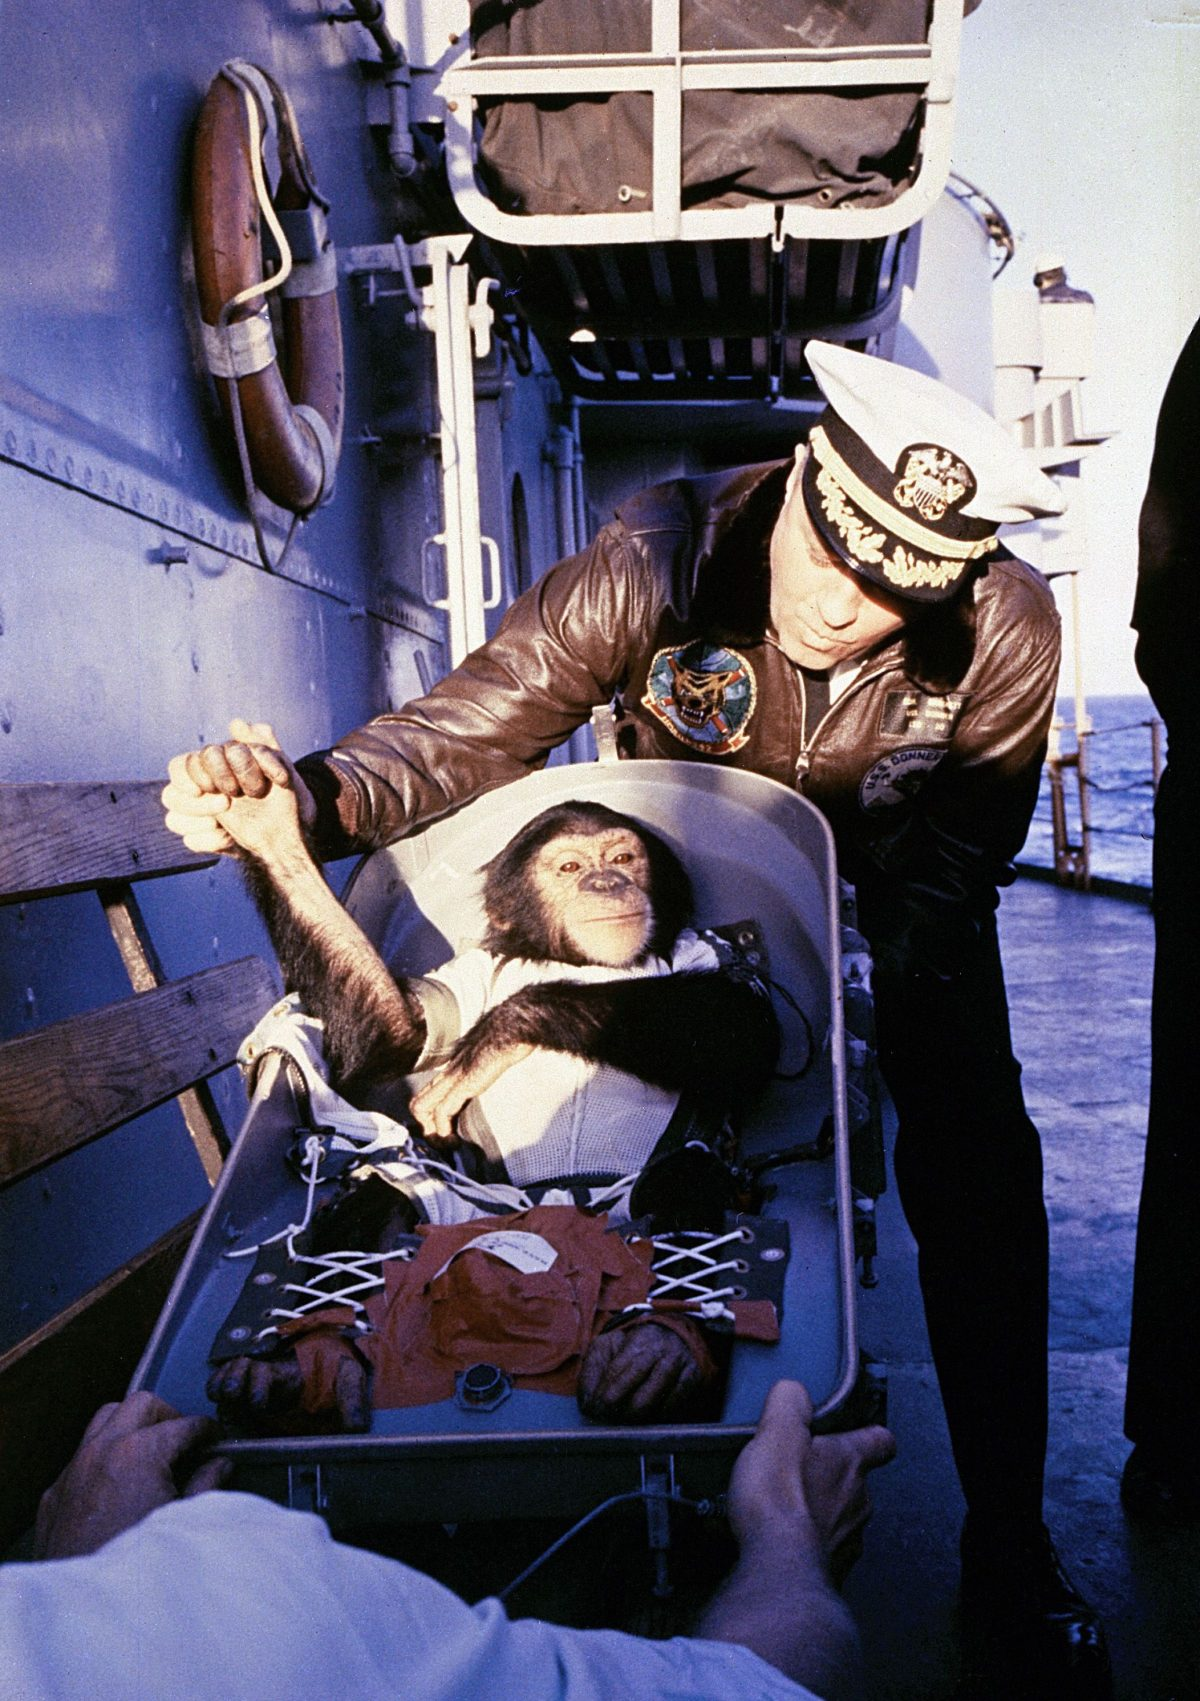 The famous hand shake welcome. Ham the Chimpanzee is greeted by recovery ship Commander after his flight on the Mercury Redstone rocket, January 31, 1961